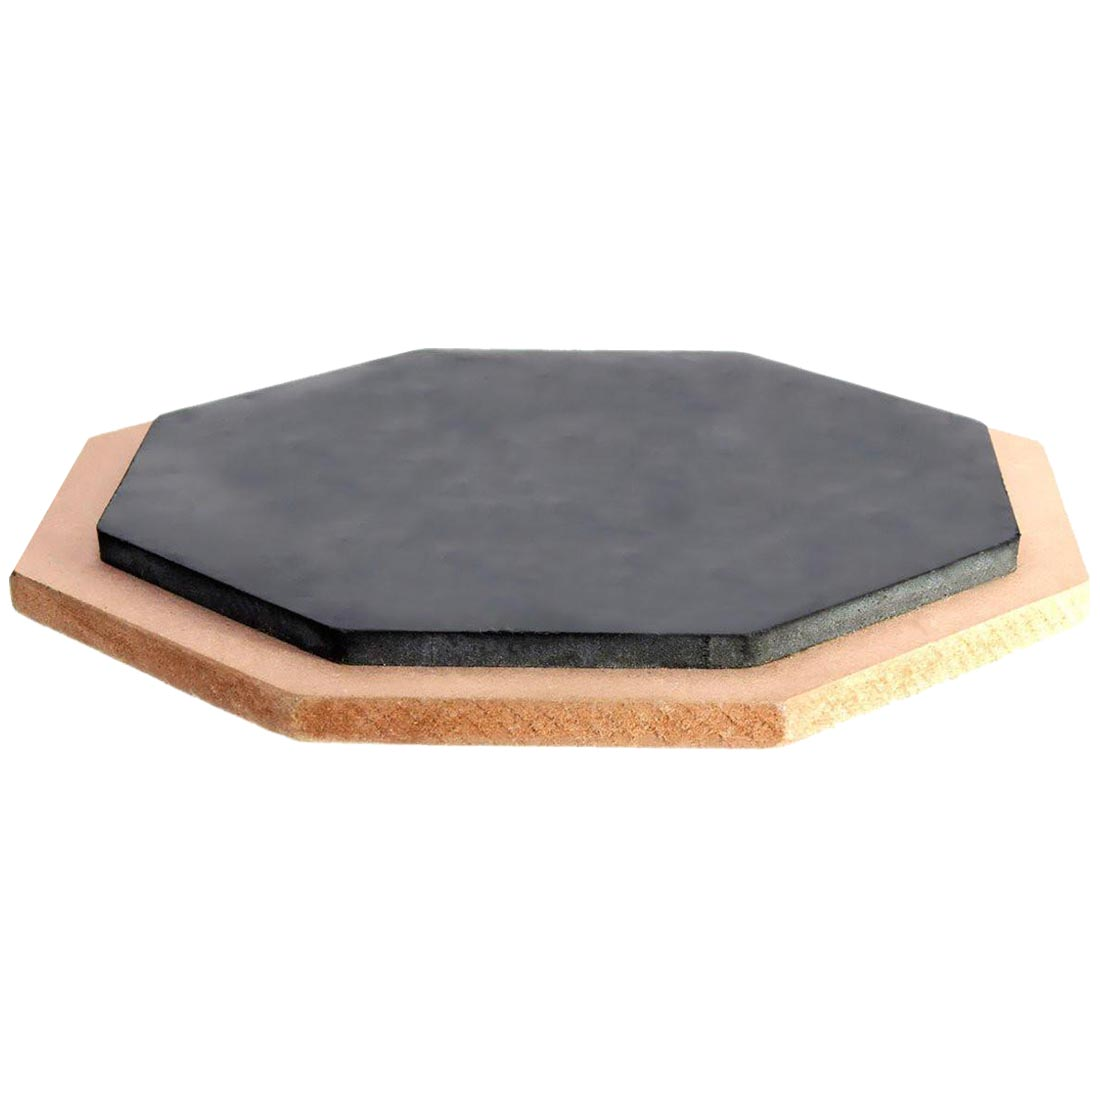 6 Wooden rubber drum pad   Practice Training Drum Pad For For Percussion Instruments Parts Accessories6 Wooden rubber drum pad   Practice Training Drum Pad For For Percussion Instruments Parts Accessories